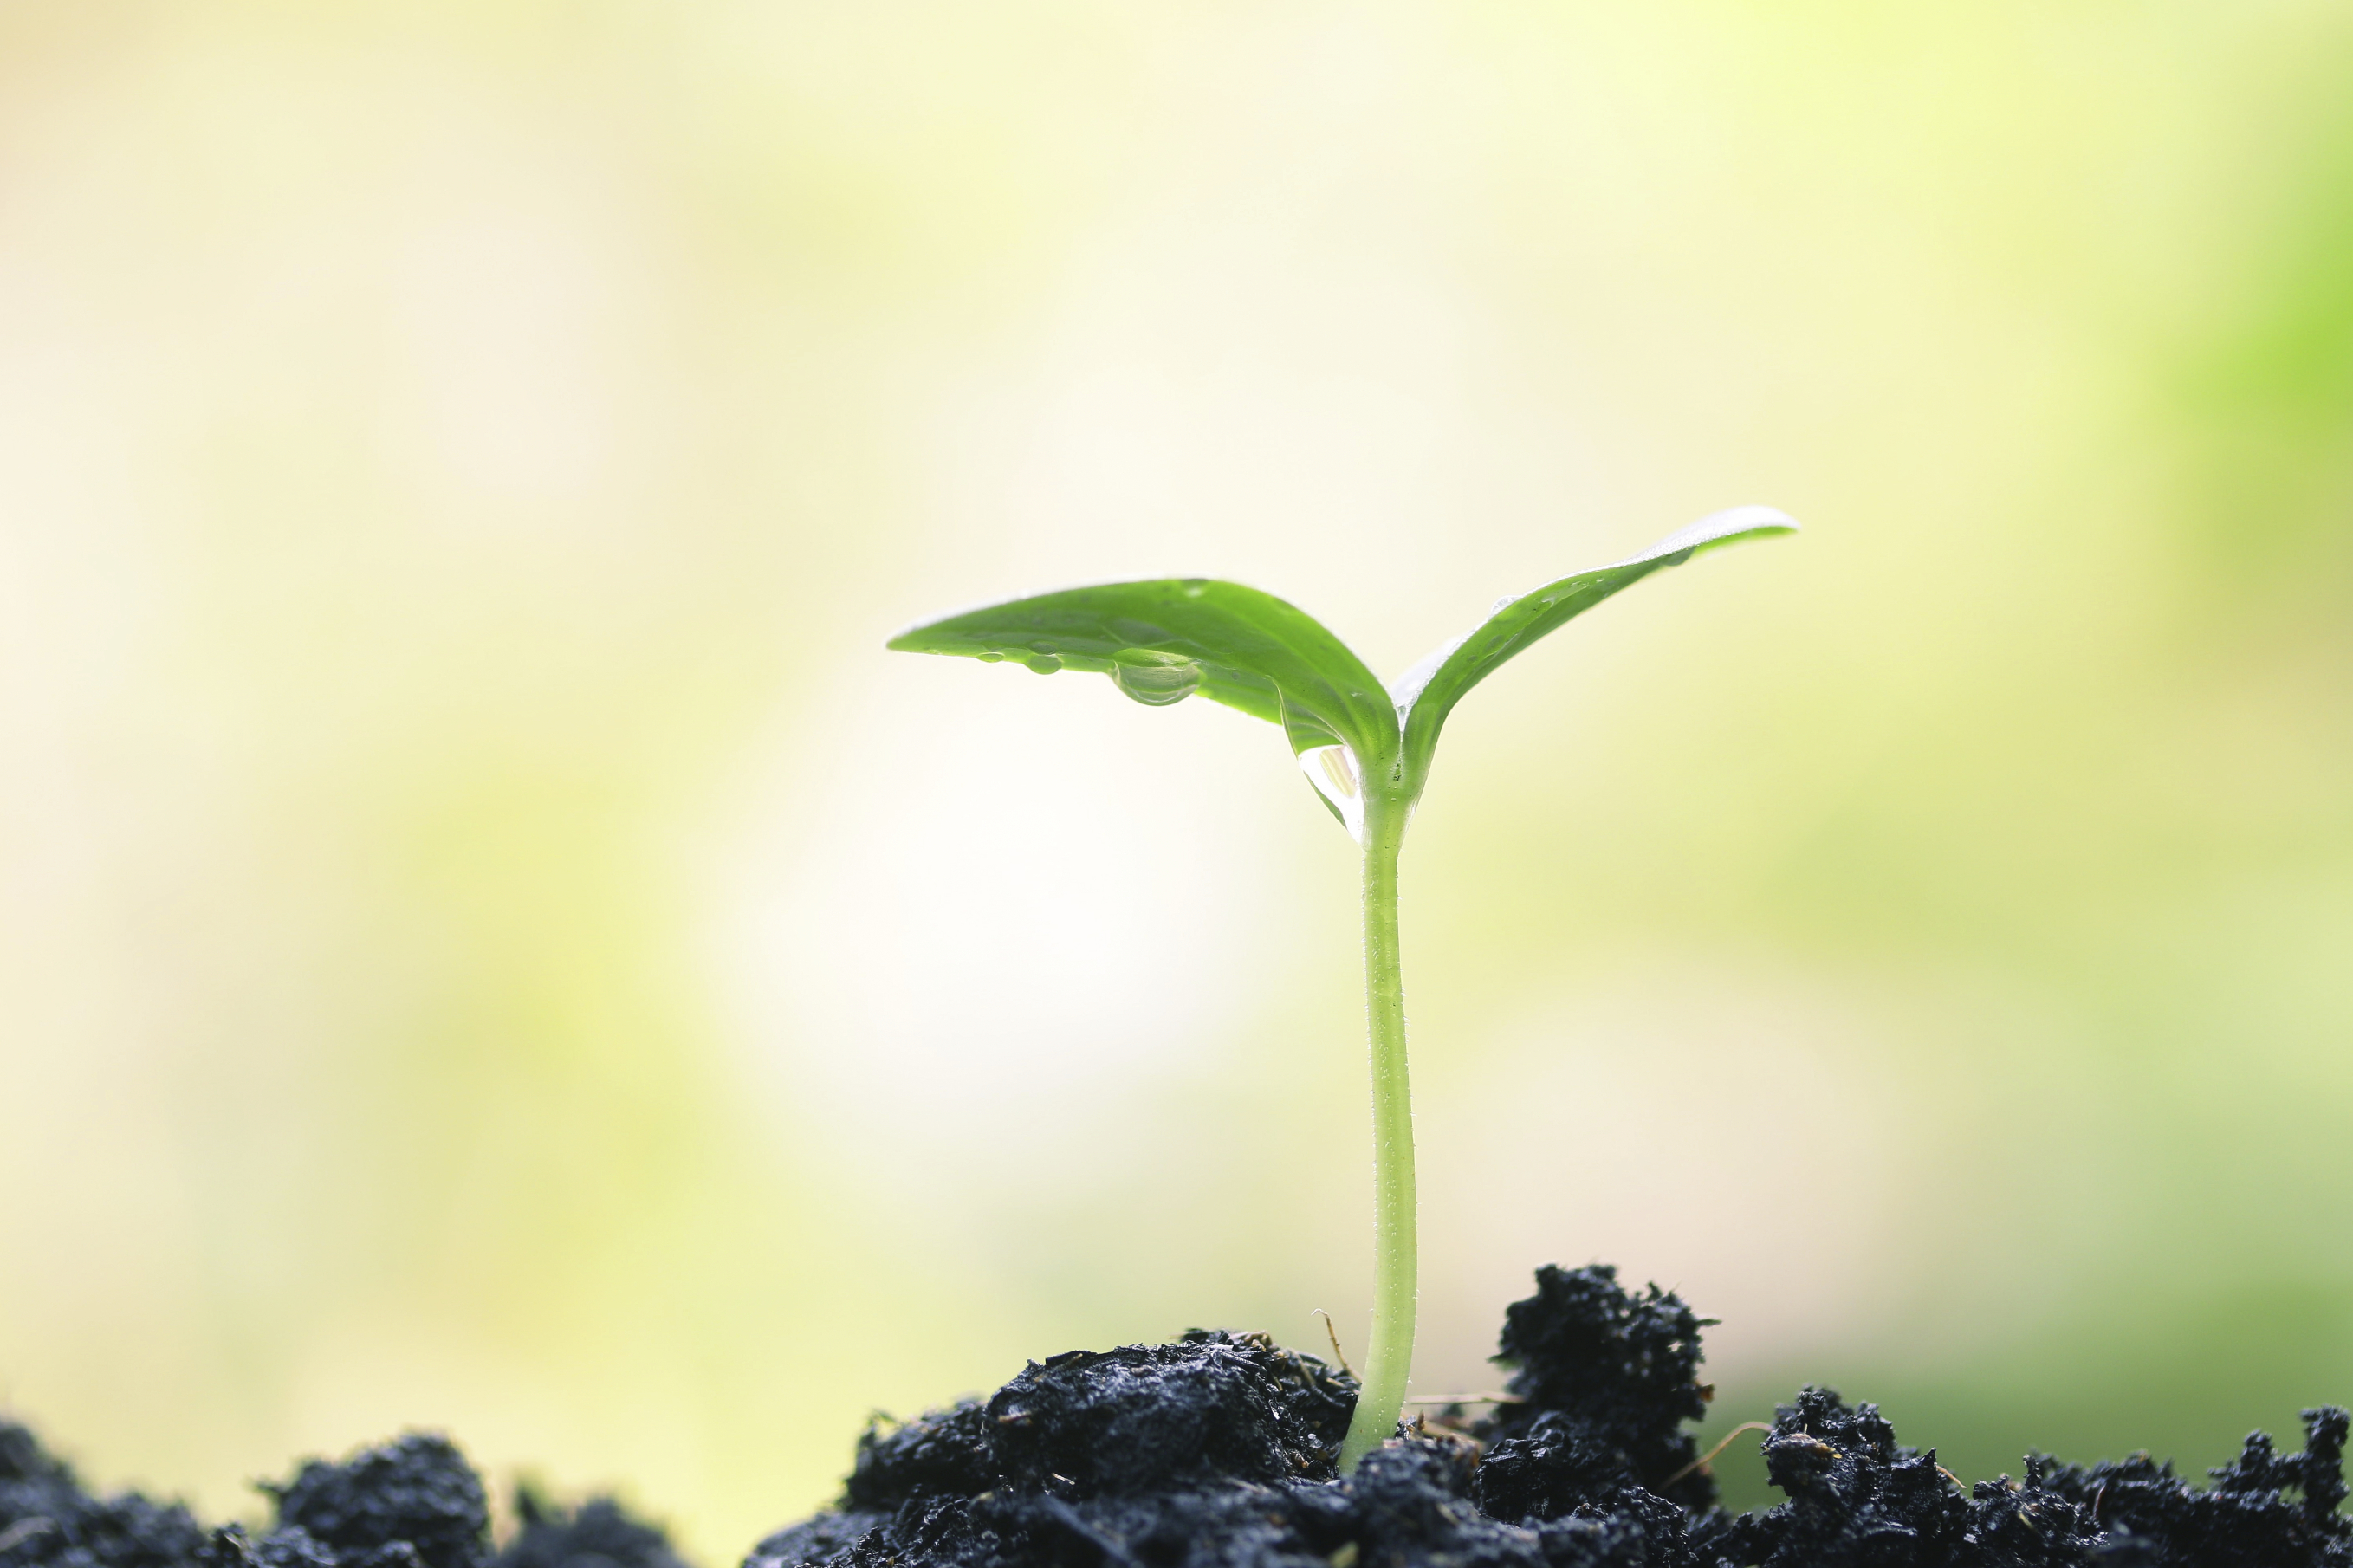 Plants can count—the mounting evidence that plants are conscious